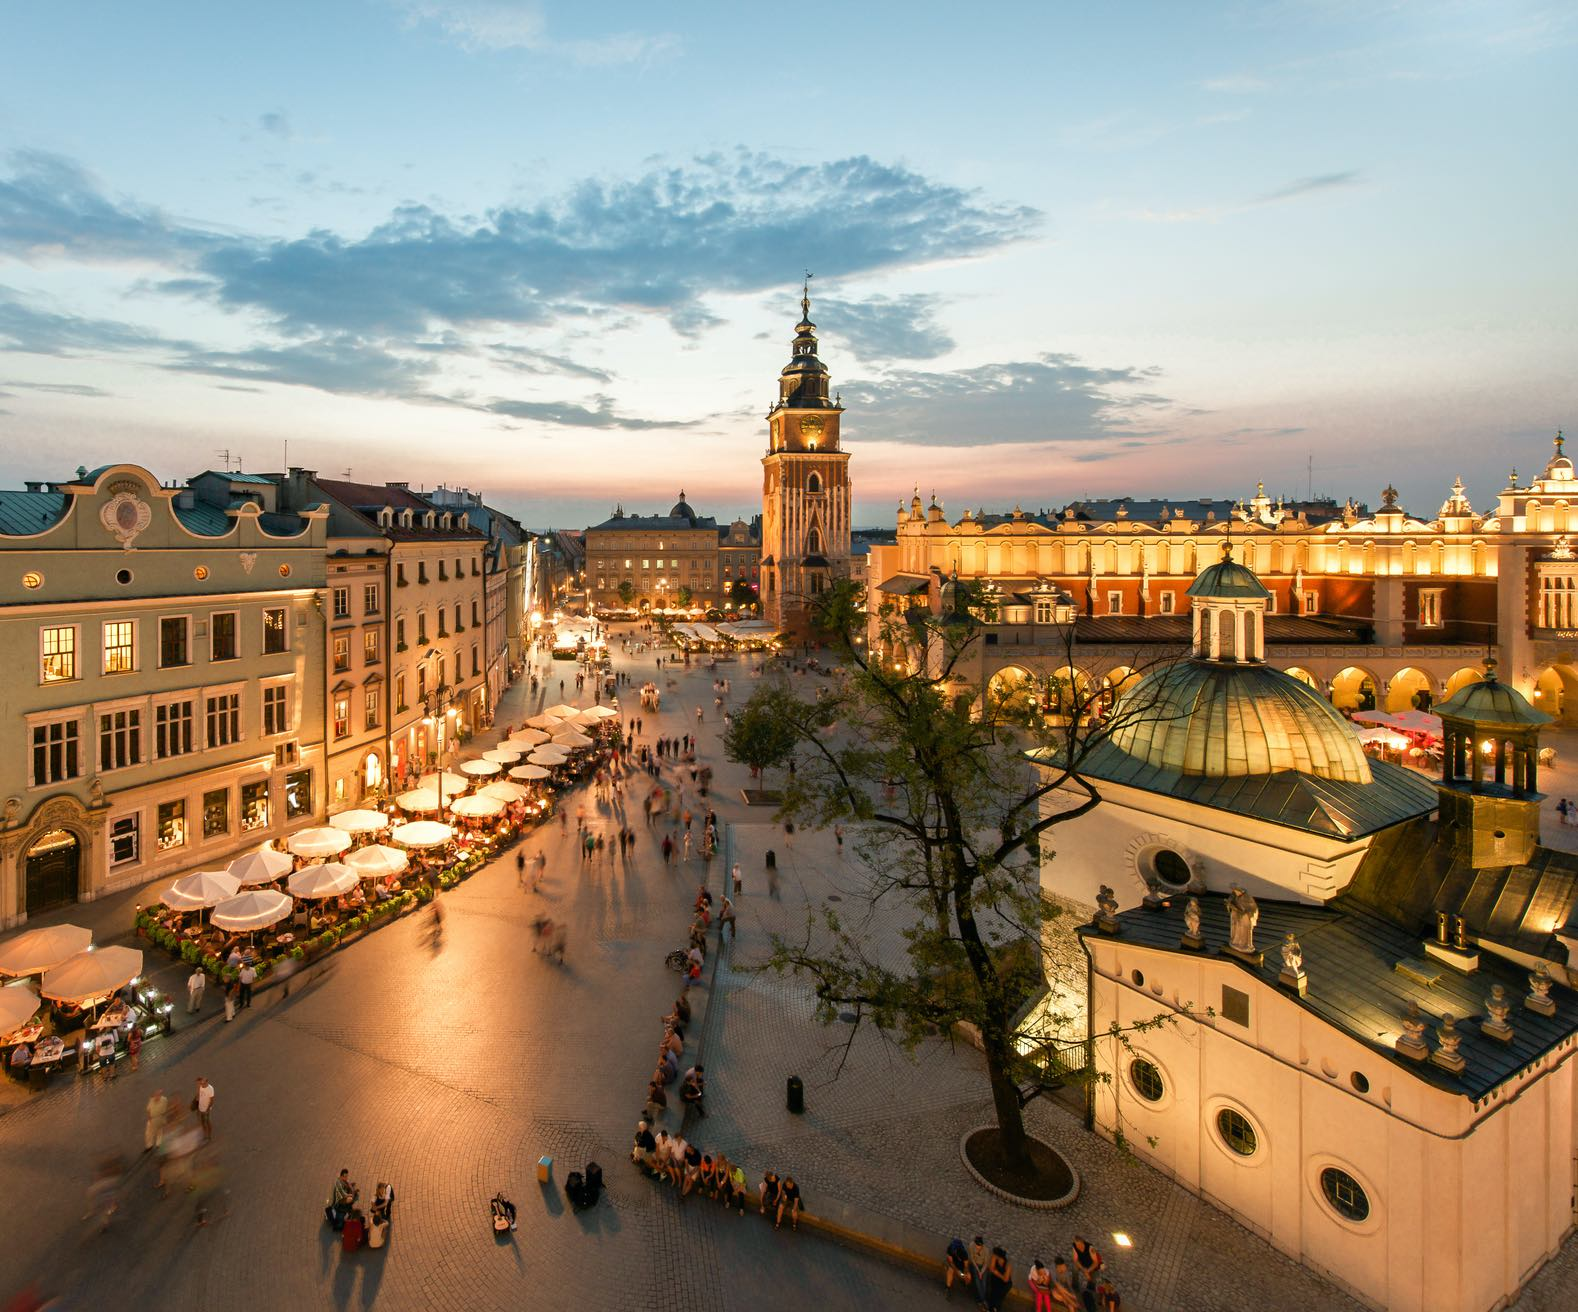 Krakow - Cheap Cities in Europe To Visit for a City Break